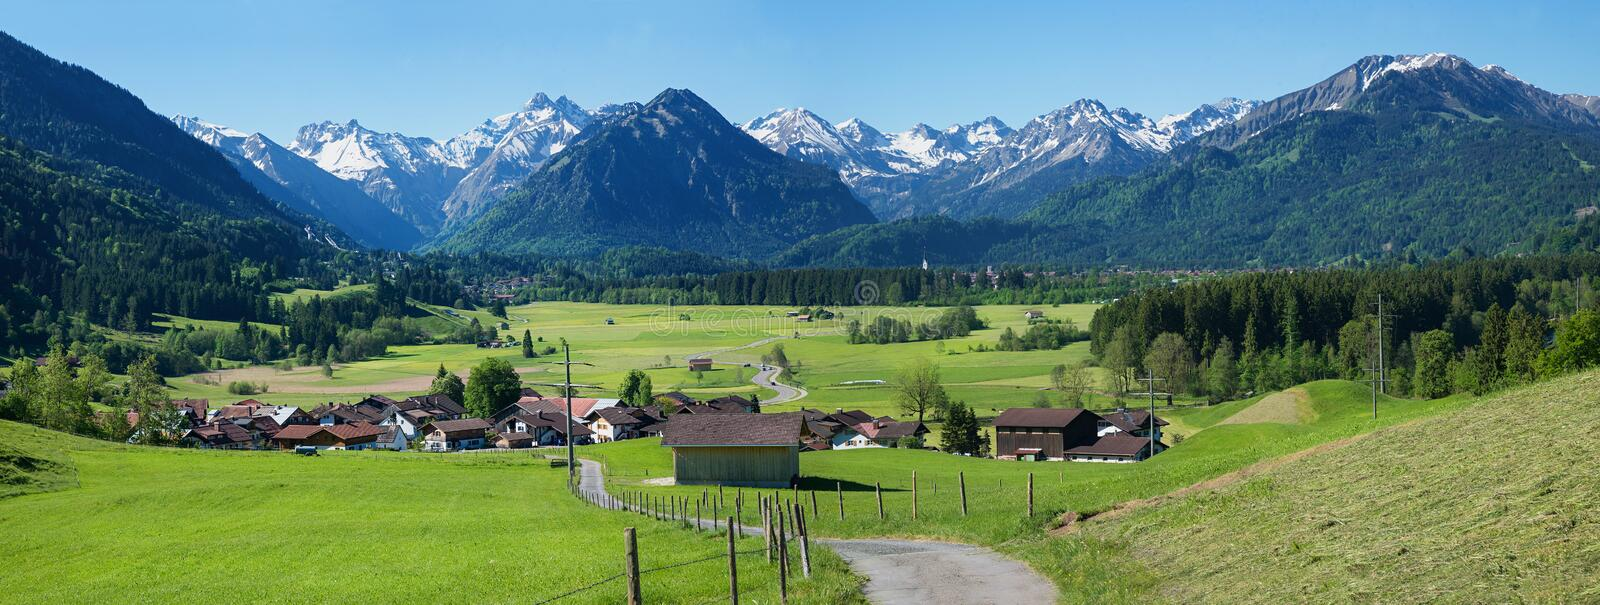 pictorial alpine landscape allgau, view to rubi village and oberstdorf royalty free stock photography